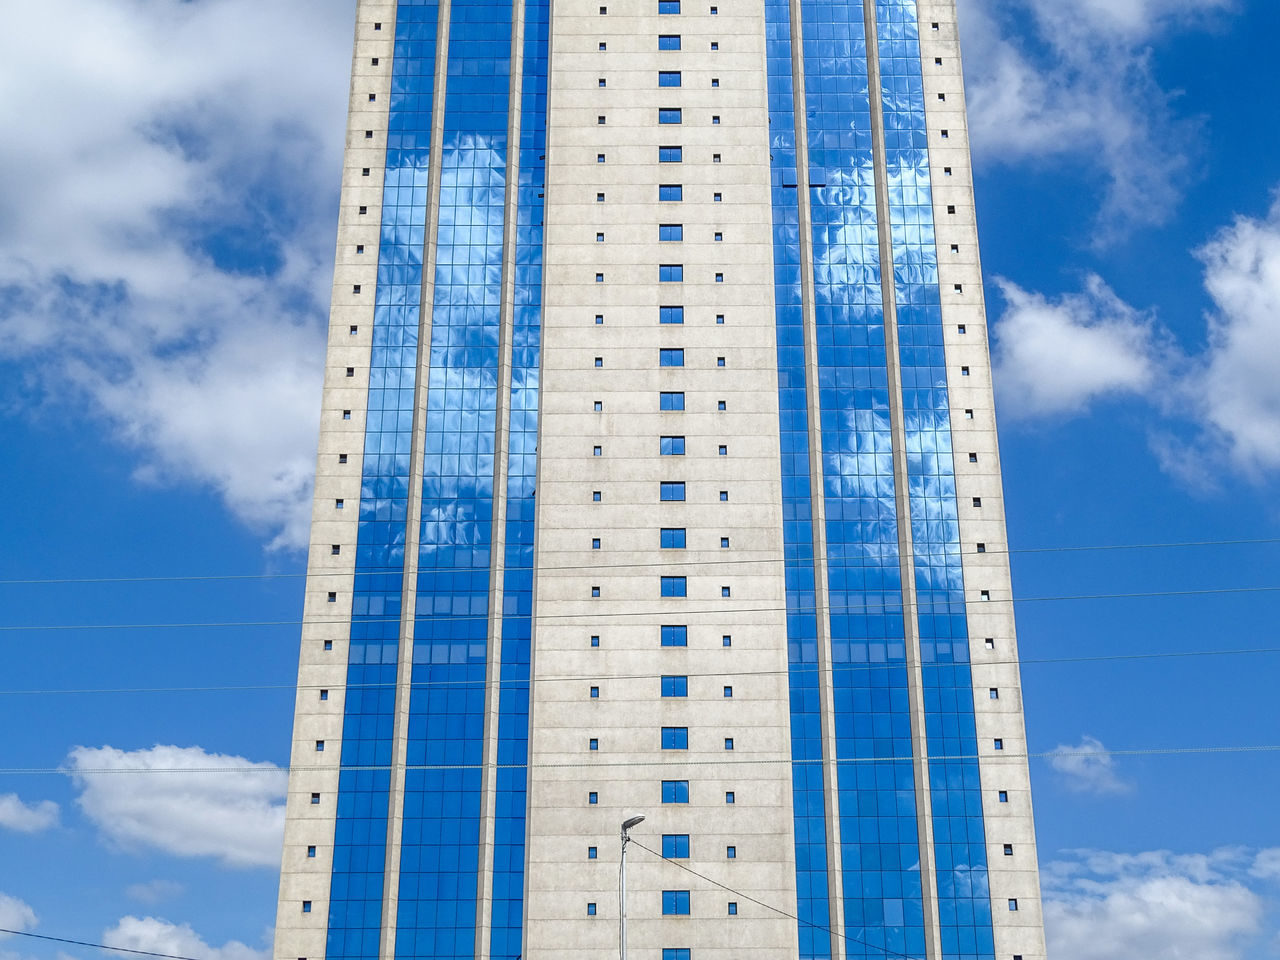 low angle view, sky, blue, cloud - sky, architecture, modern, built structure, skyscraper, day, no people, building exterior, tall, outdoors, city, nature